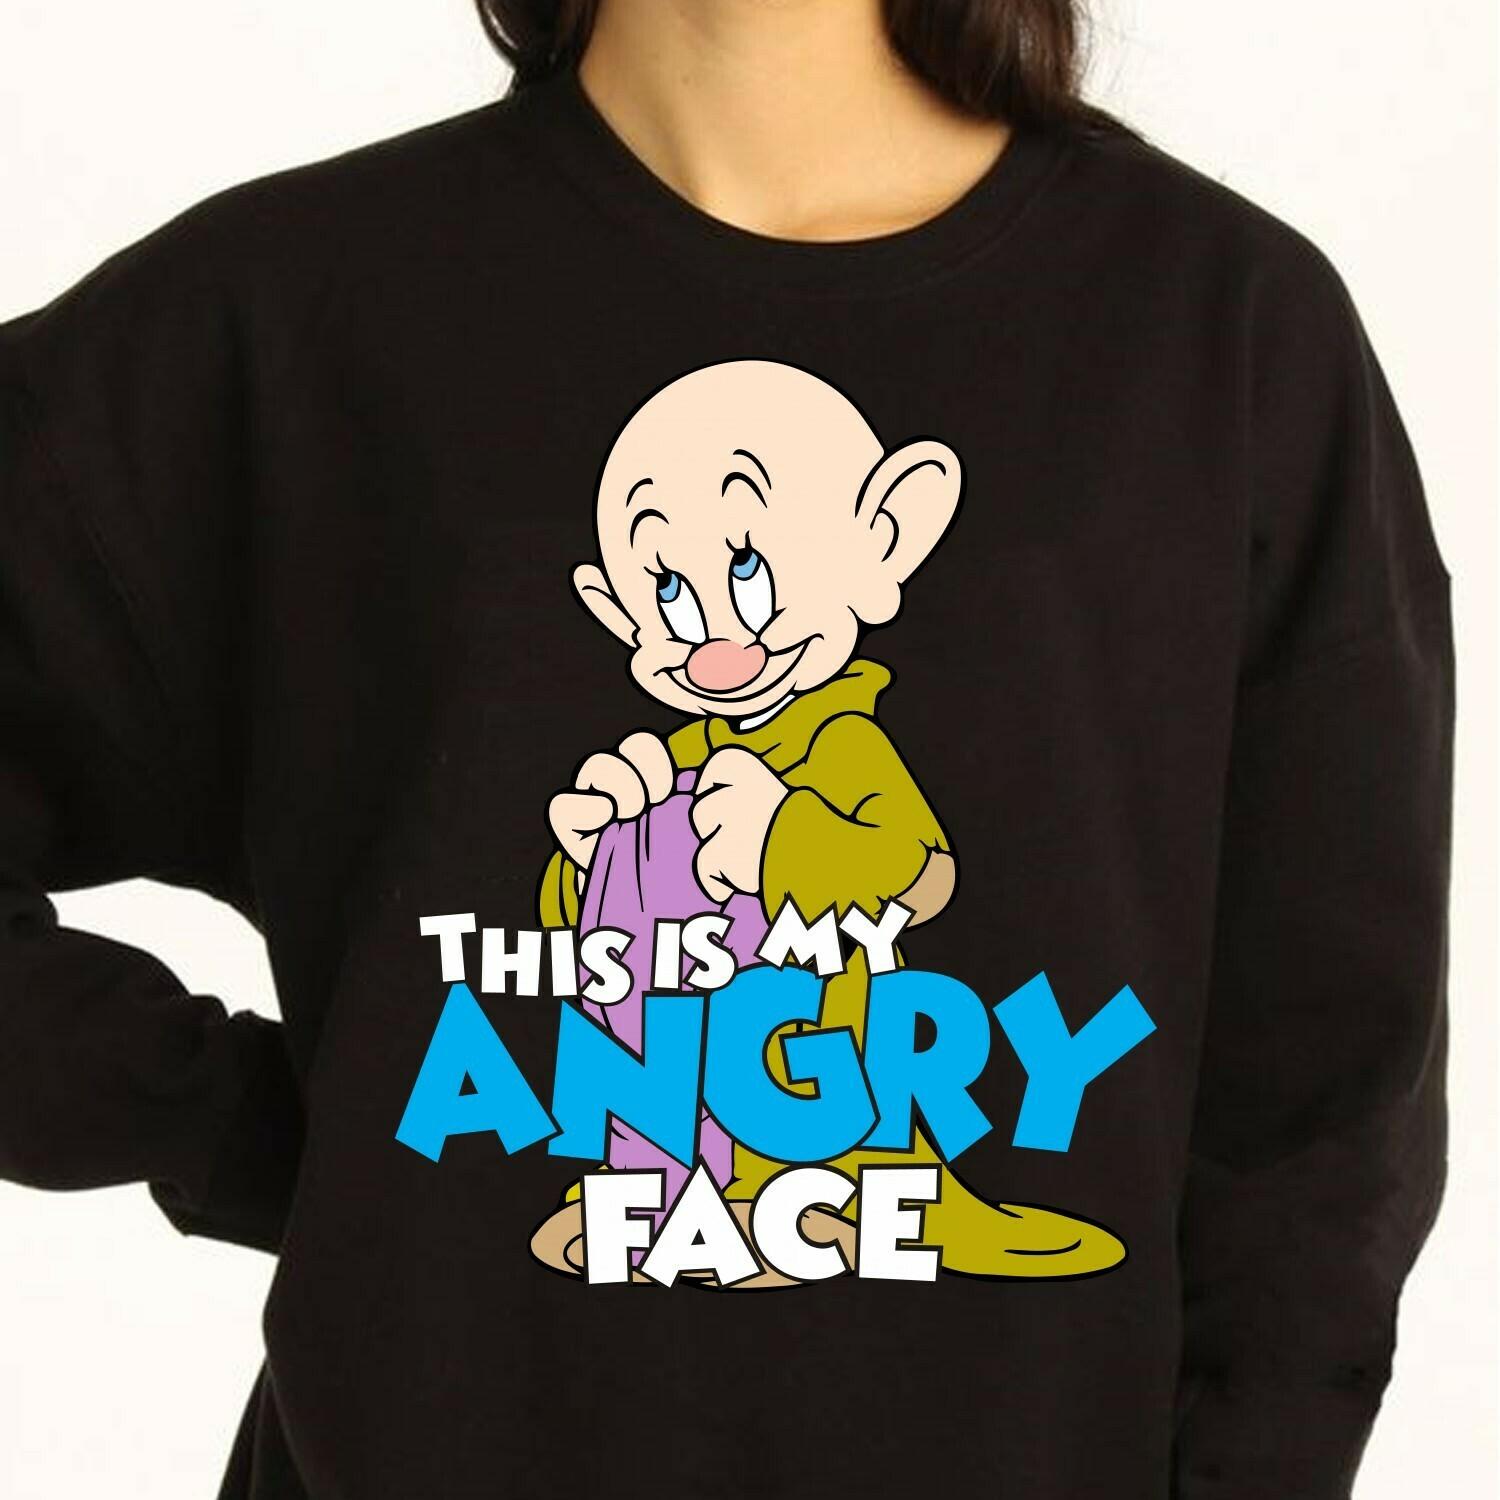 Disney Dopey Dwarf This Is My Angry Face,Snow White and the Seven Dwarfs,Walt Disney World,Disney Grumpy Old Man,Dopey Seven Dwarfs T Shirt Long Sleeve Sweatshirt Hoodie Jolly Family Gifts